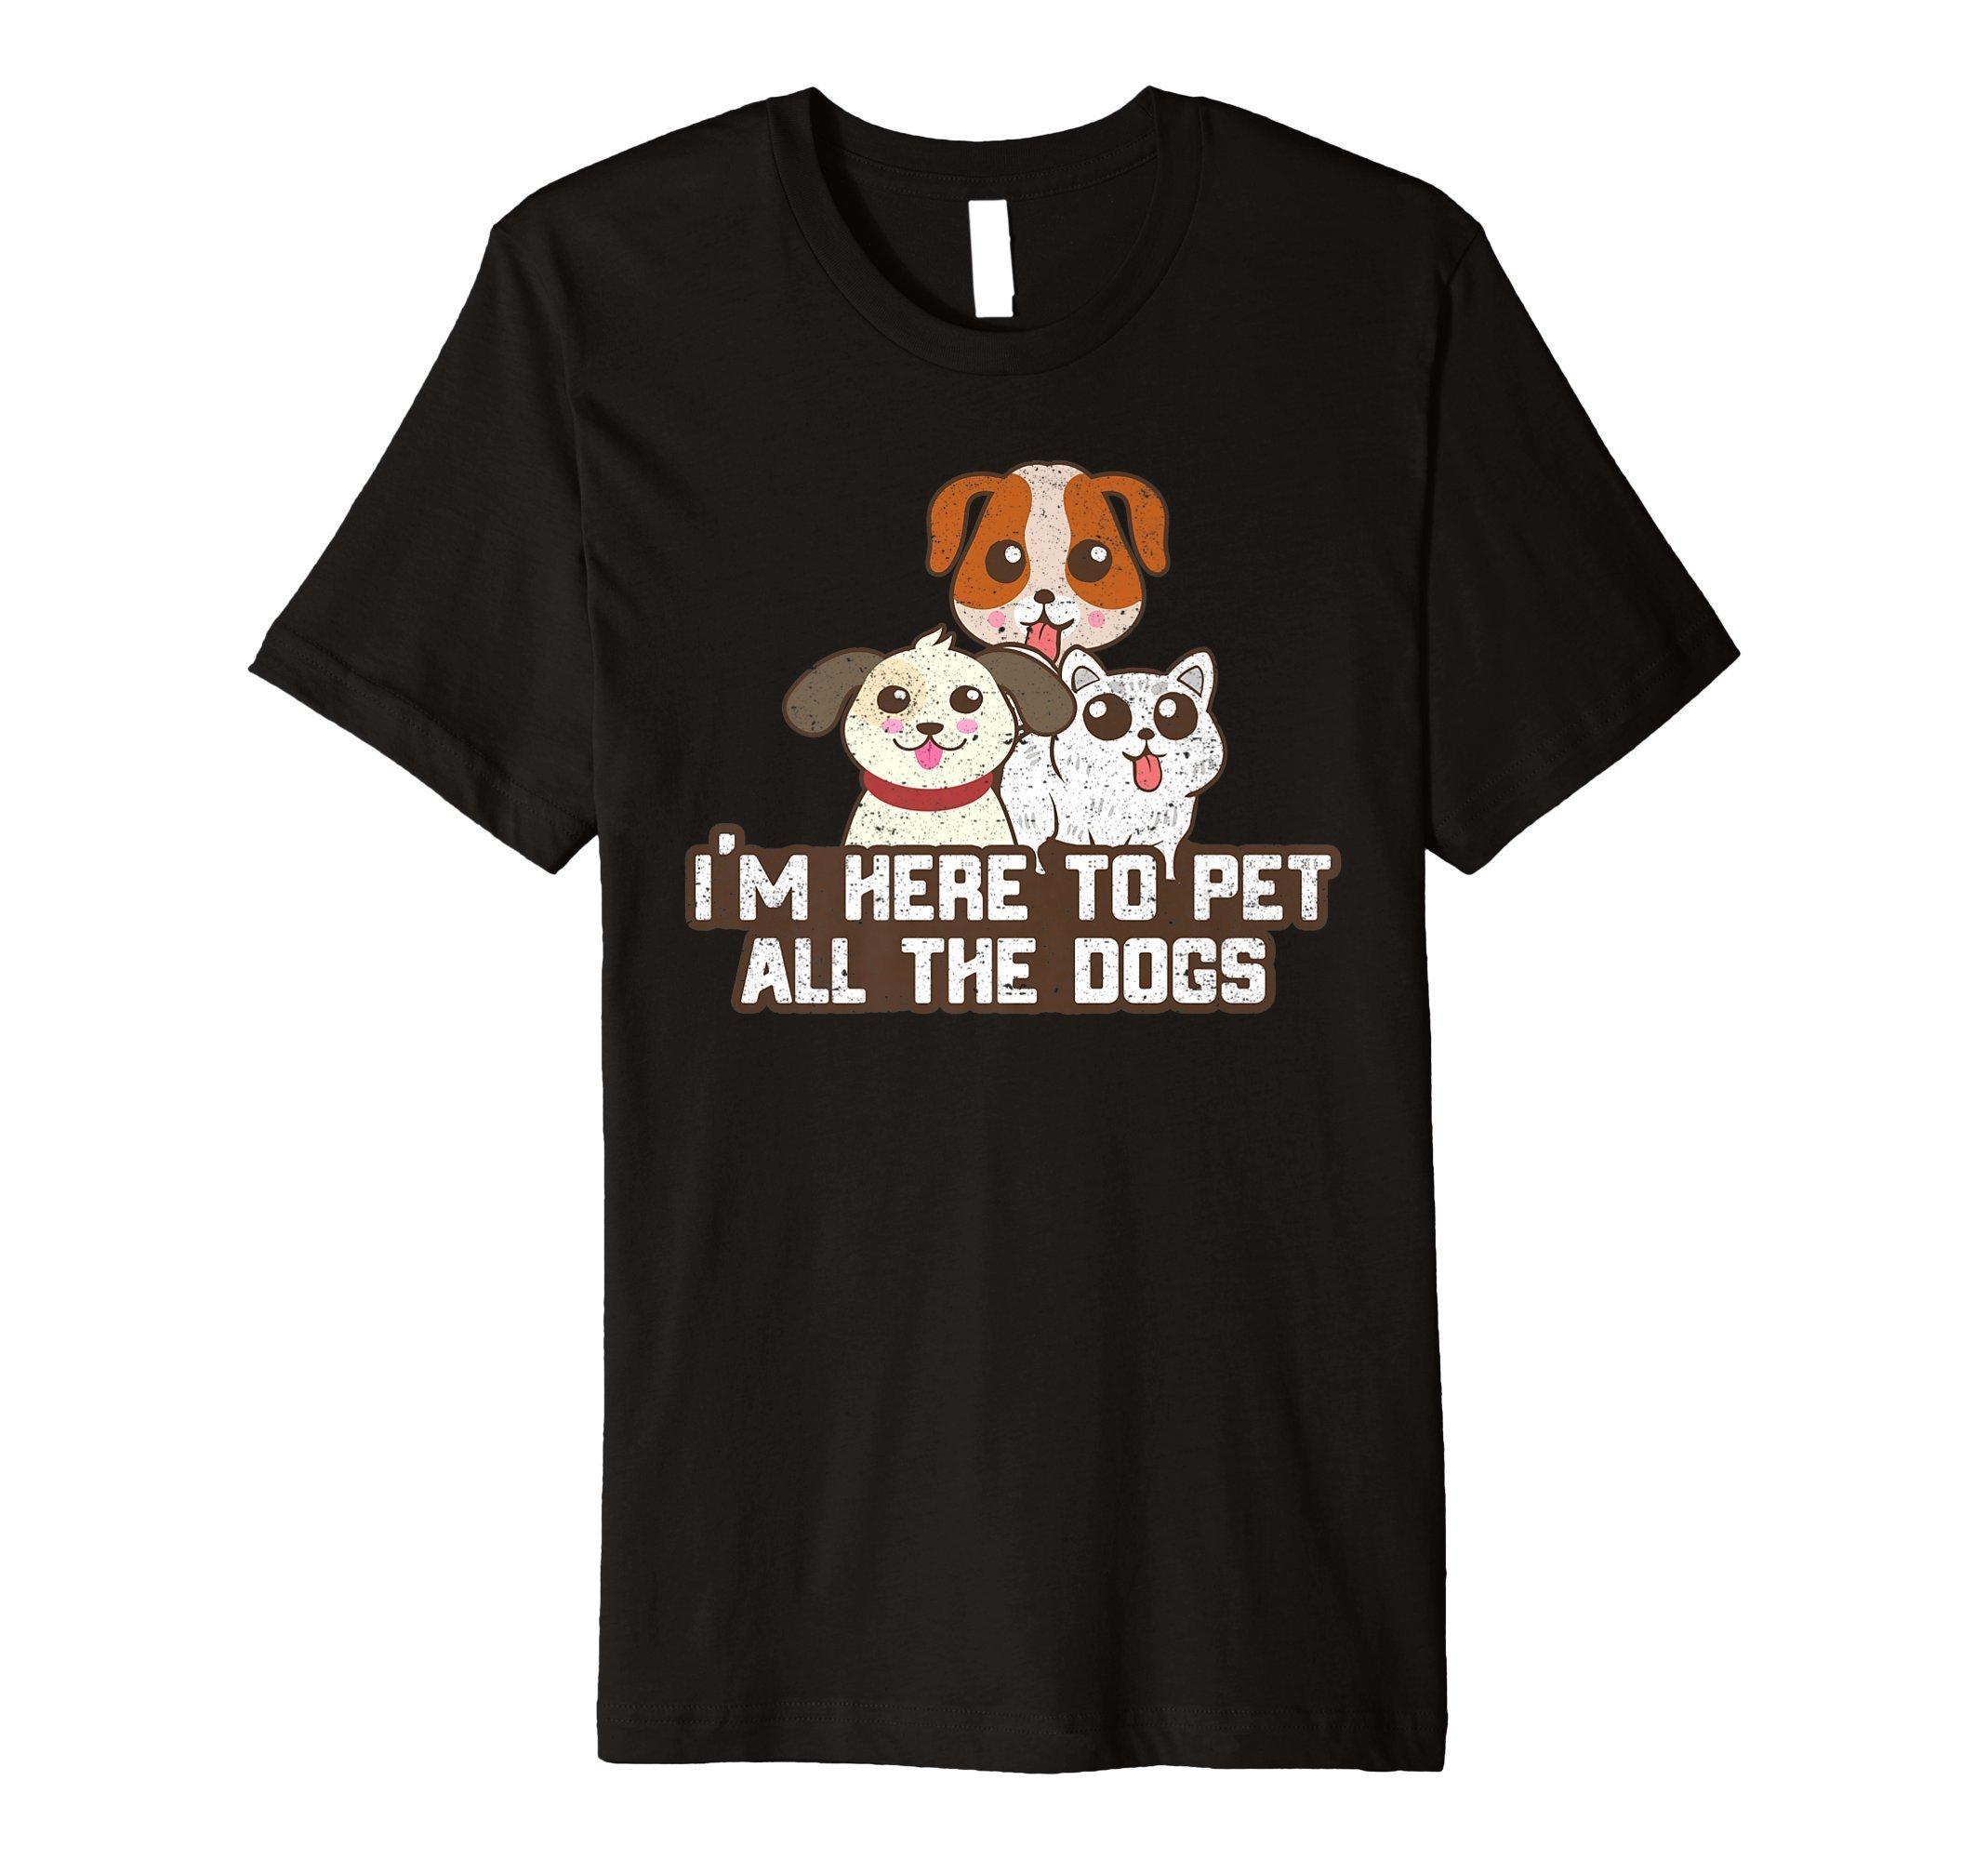 I'm Here to Pet All The Dogs Cute Puppy Dog Tshirt